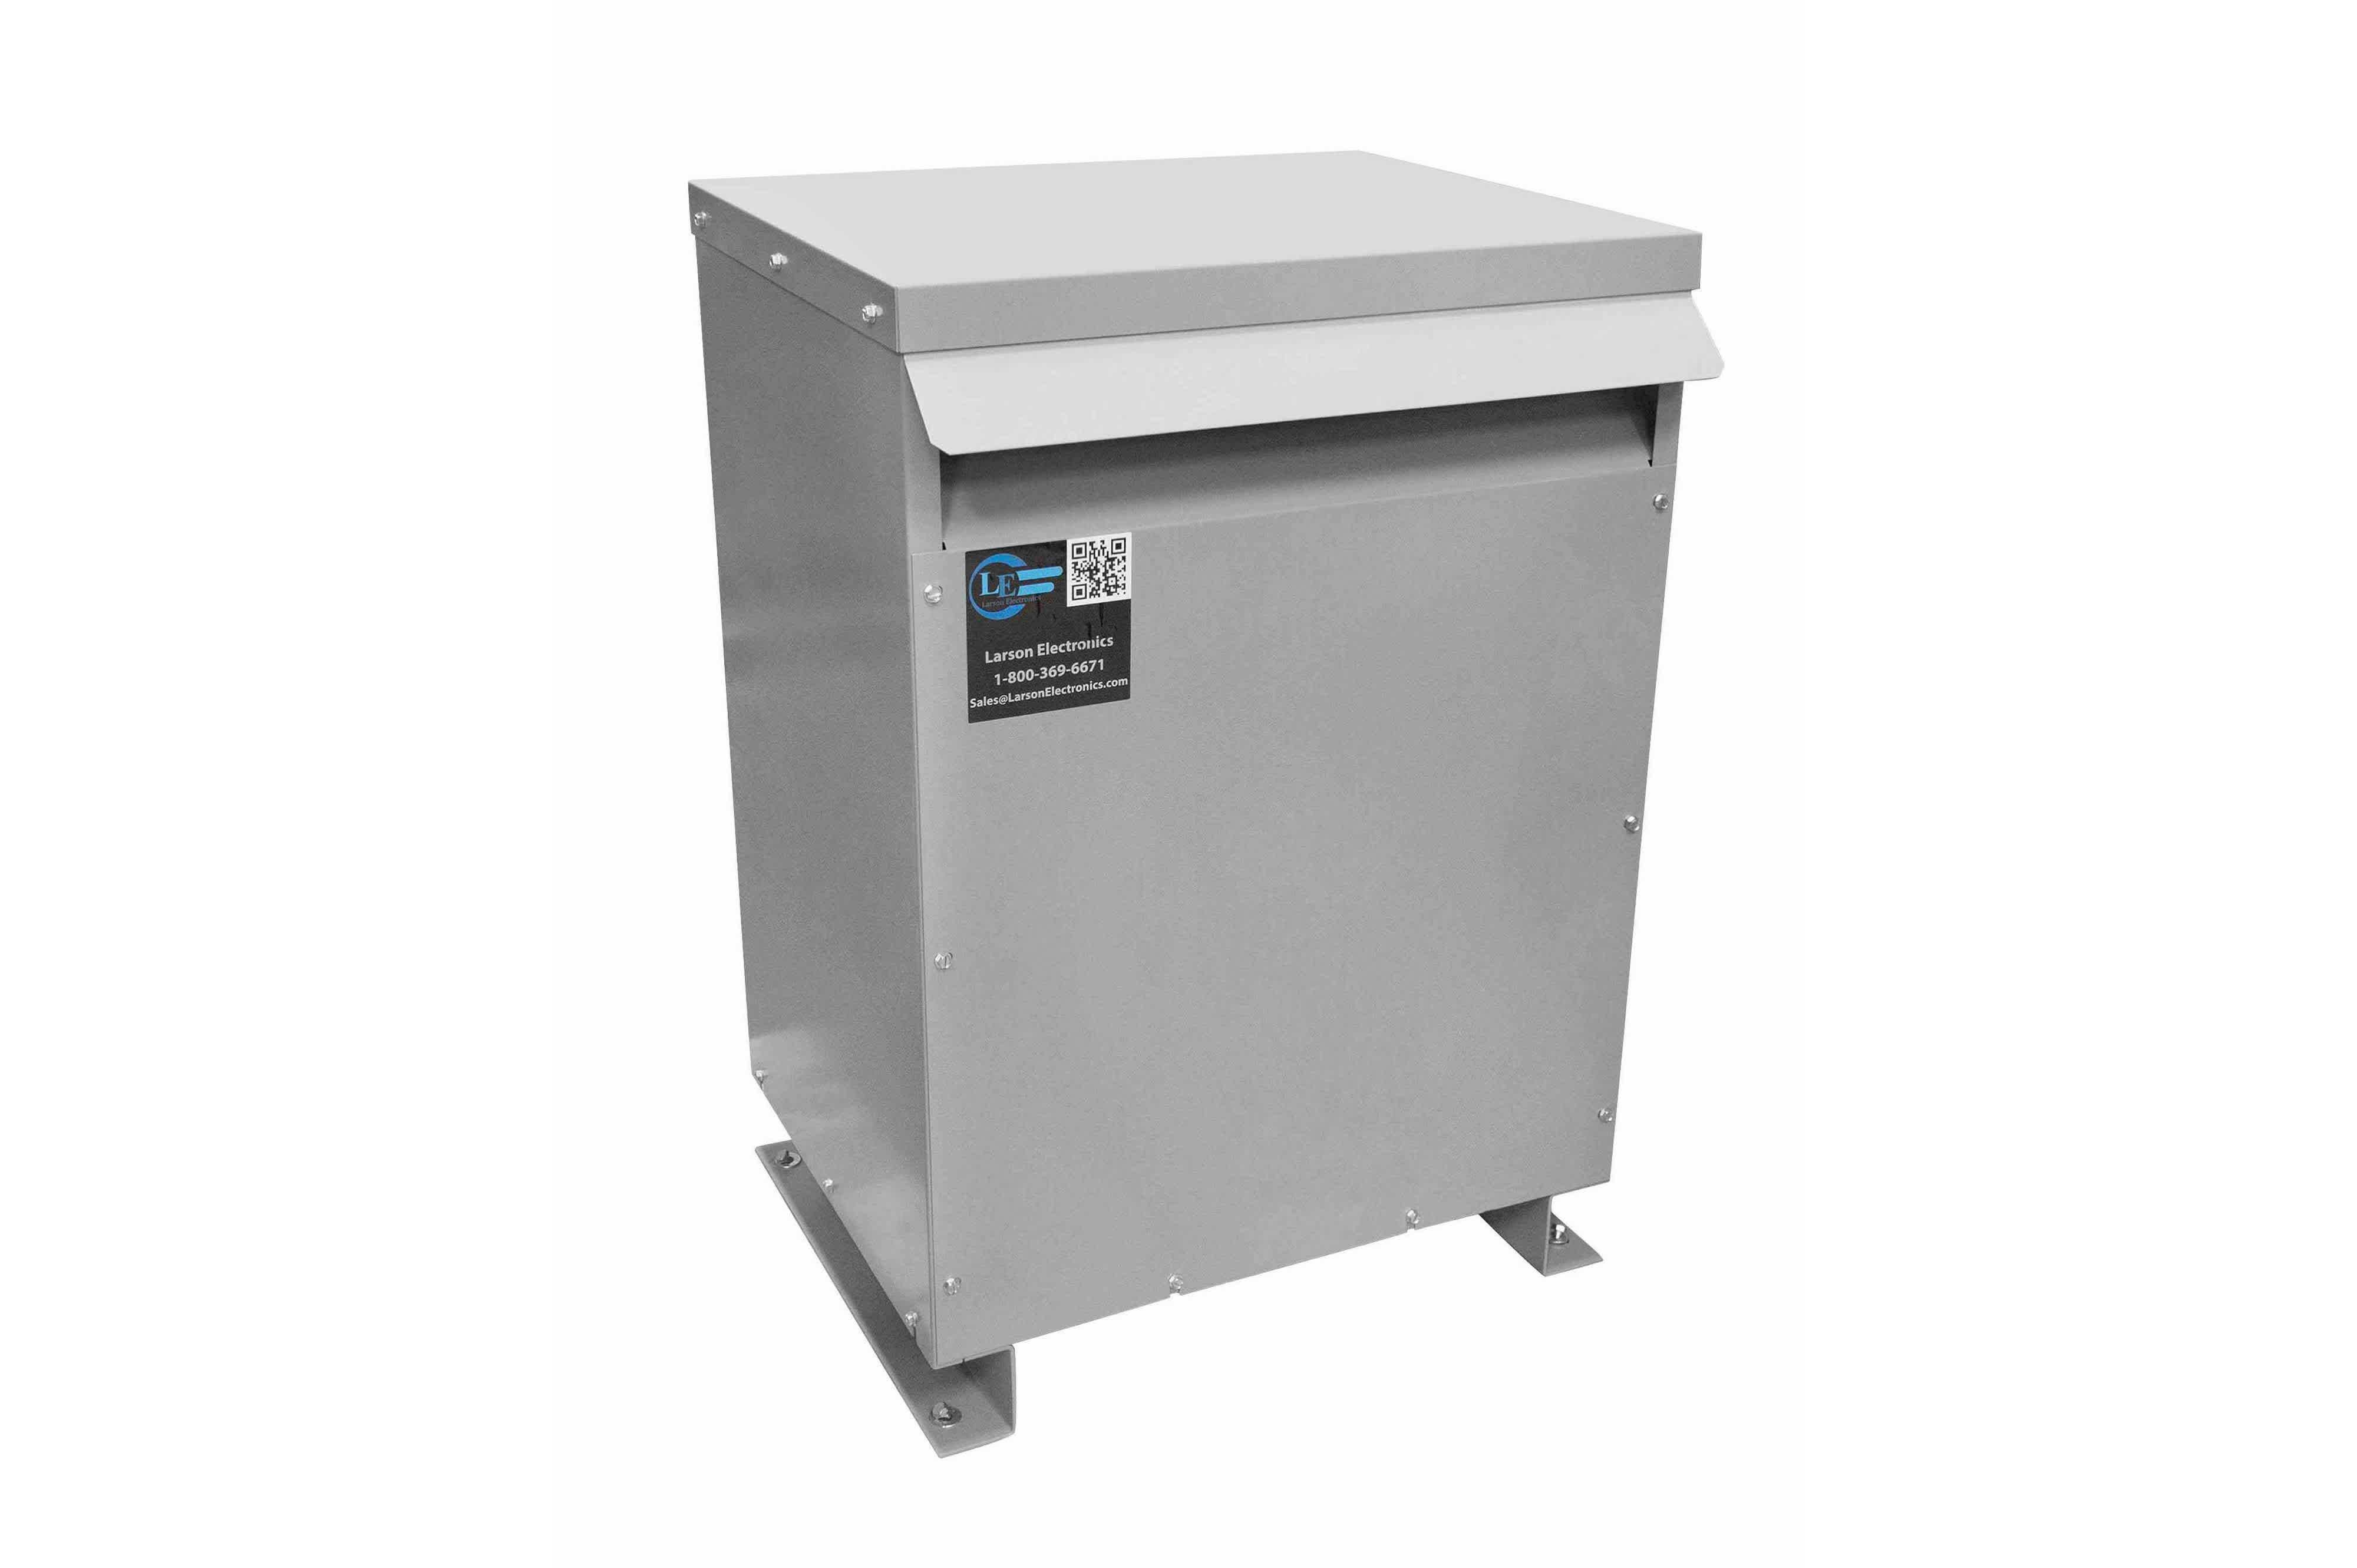 32.5 kVA 3PH Isolation Transformer, 380V Wye Primary, 208Y/120 Wye-N Secondary, N3R, Ventilated, 60 Hz